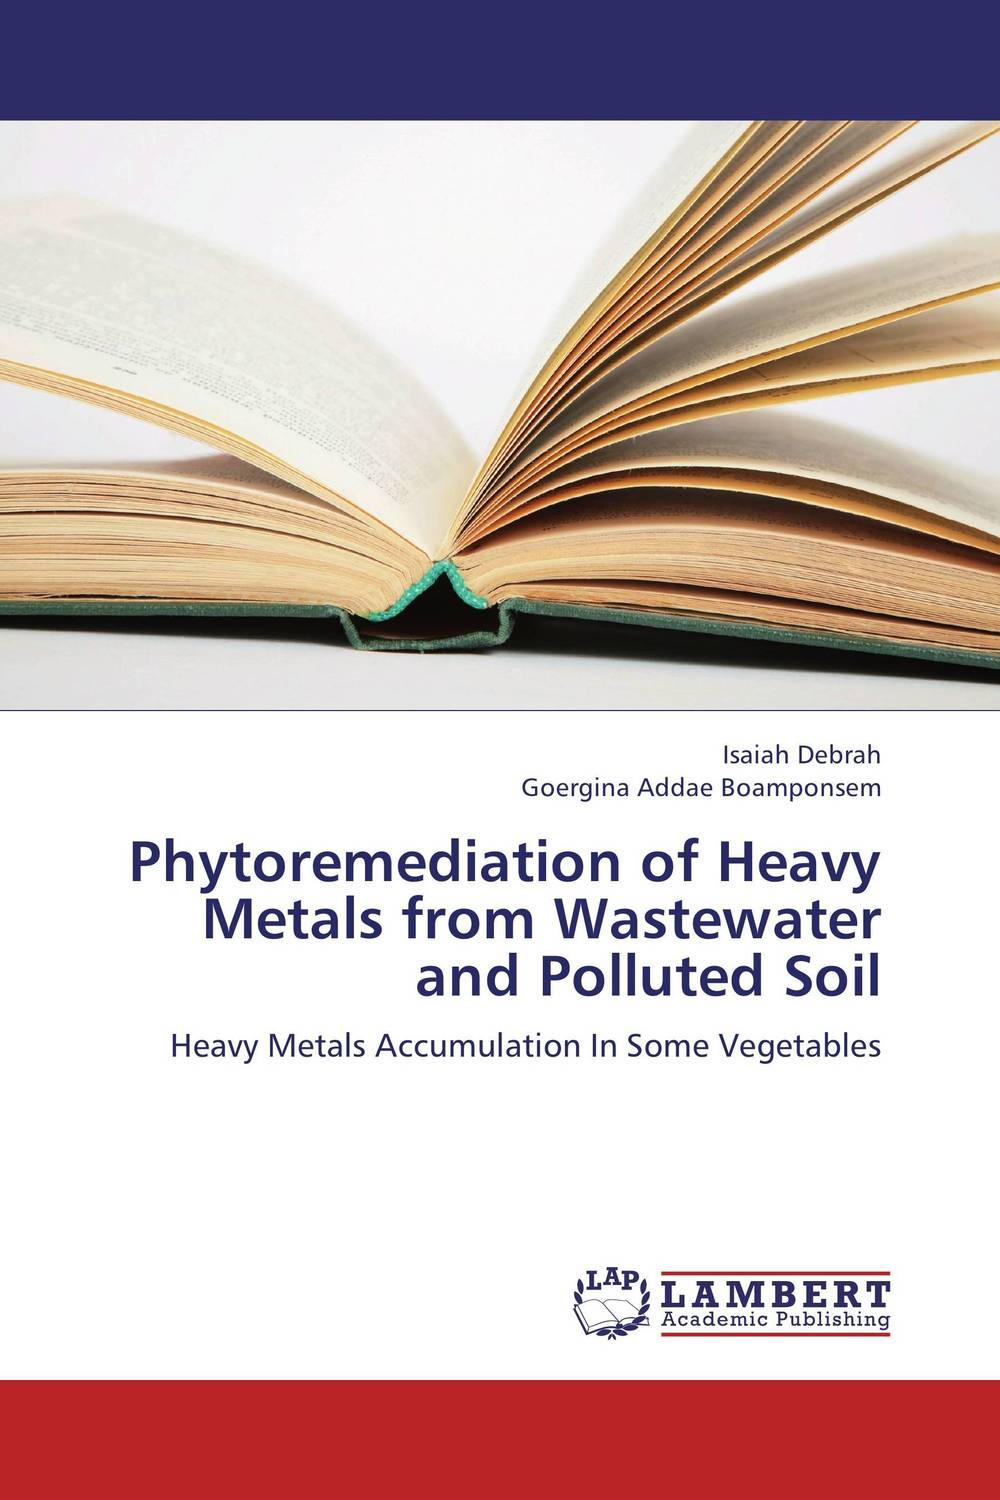 Phytoremediation of Heavy Metals from Wastewater and Polluted Soil marwan a ibrahim effect of heavy metals on haematological and testicular functions